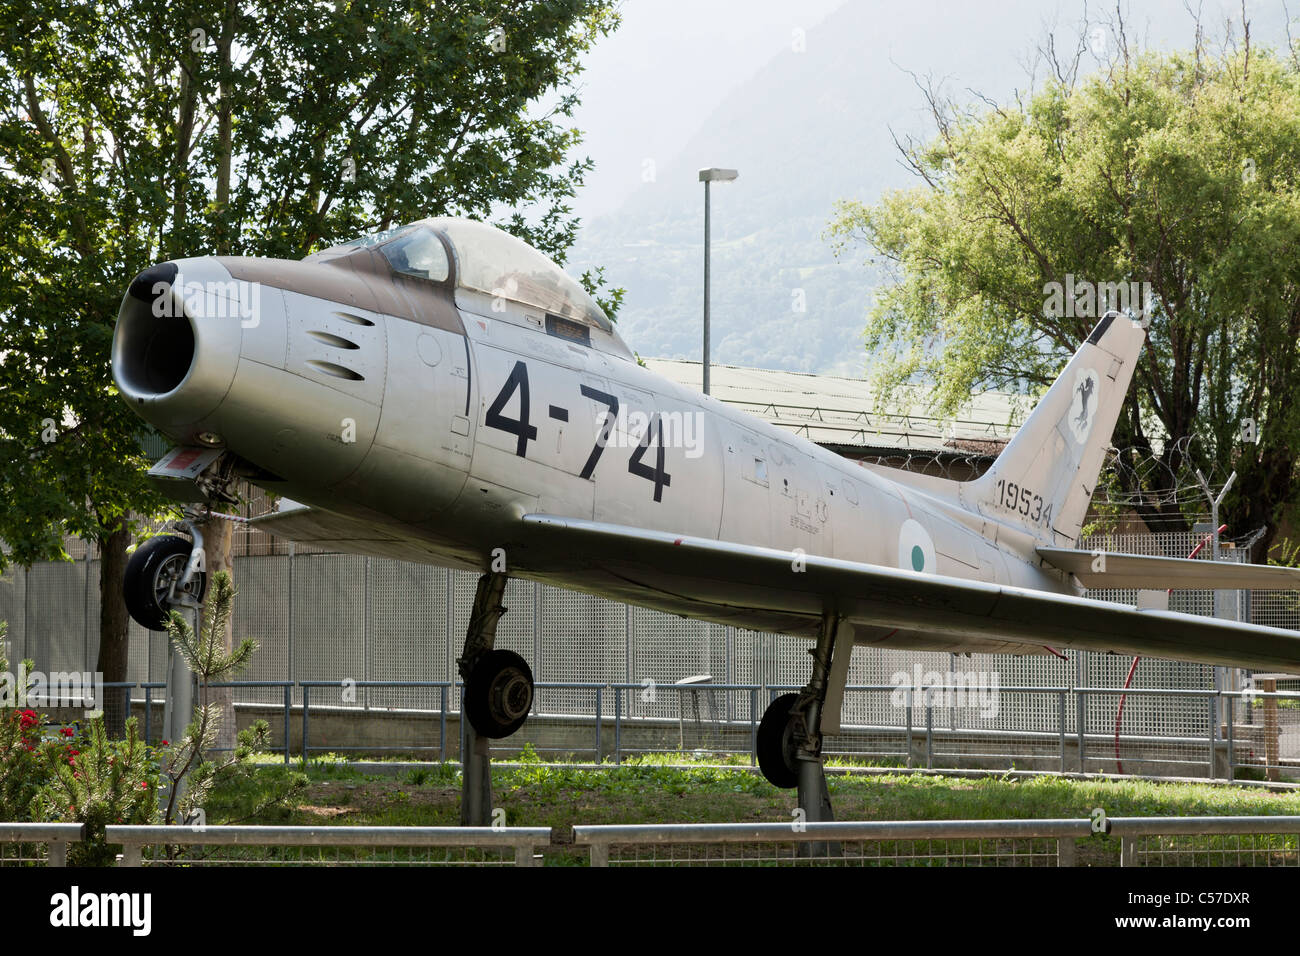 Canadair F-86 Sabre 4 belonging to the Italian Air Force, preserved at Aosta Airport, Italy - Stock Image